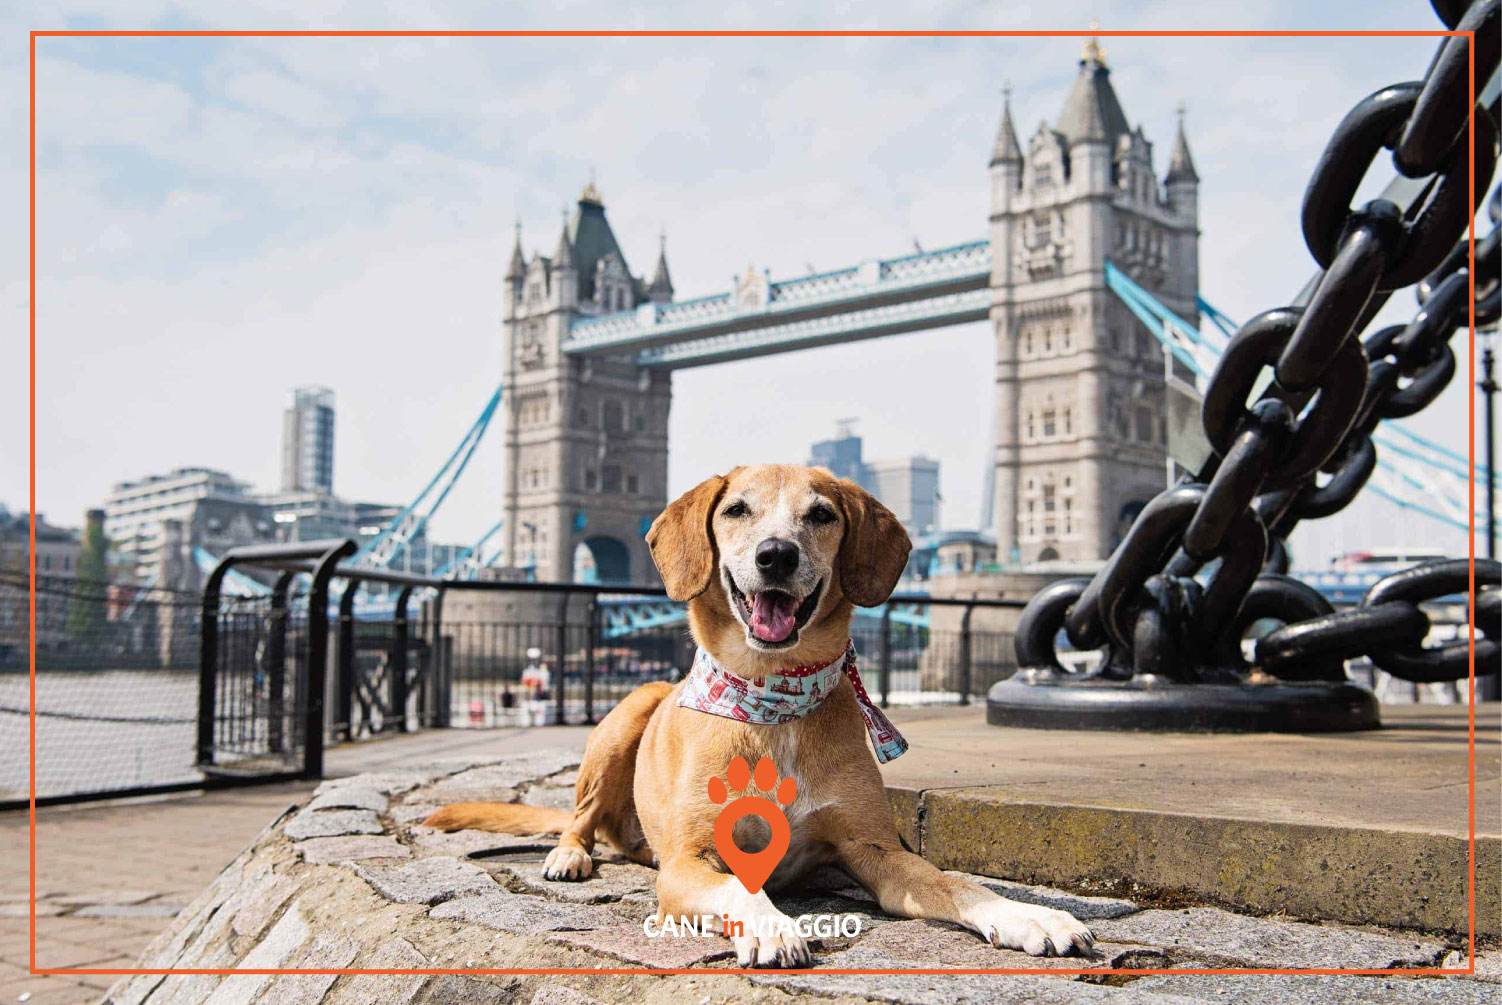 cane in viaggio all'estero a londra